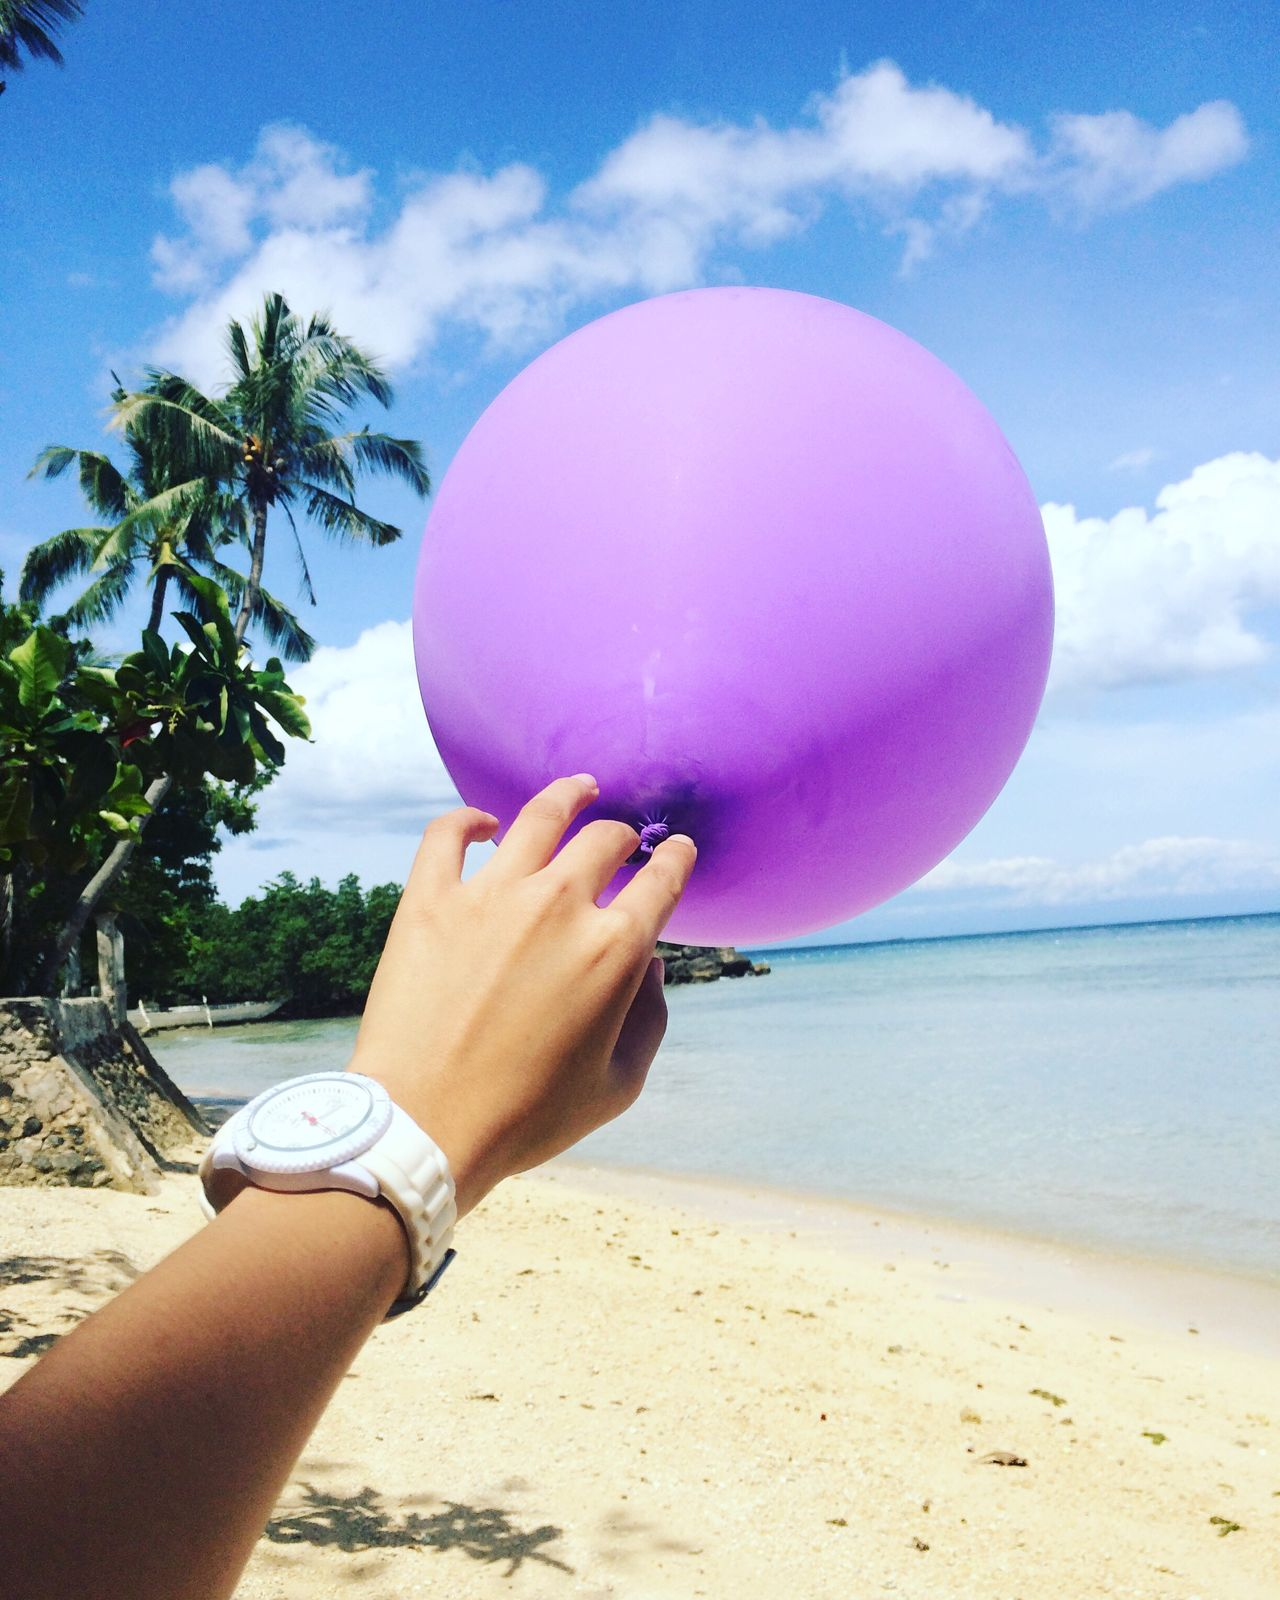 It's never easy to let go of things that means so much. First Eyeem Photo Purple Balloon Beachphotography Letting Go Fresh On Market May 2016 Fresh On Market 2016